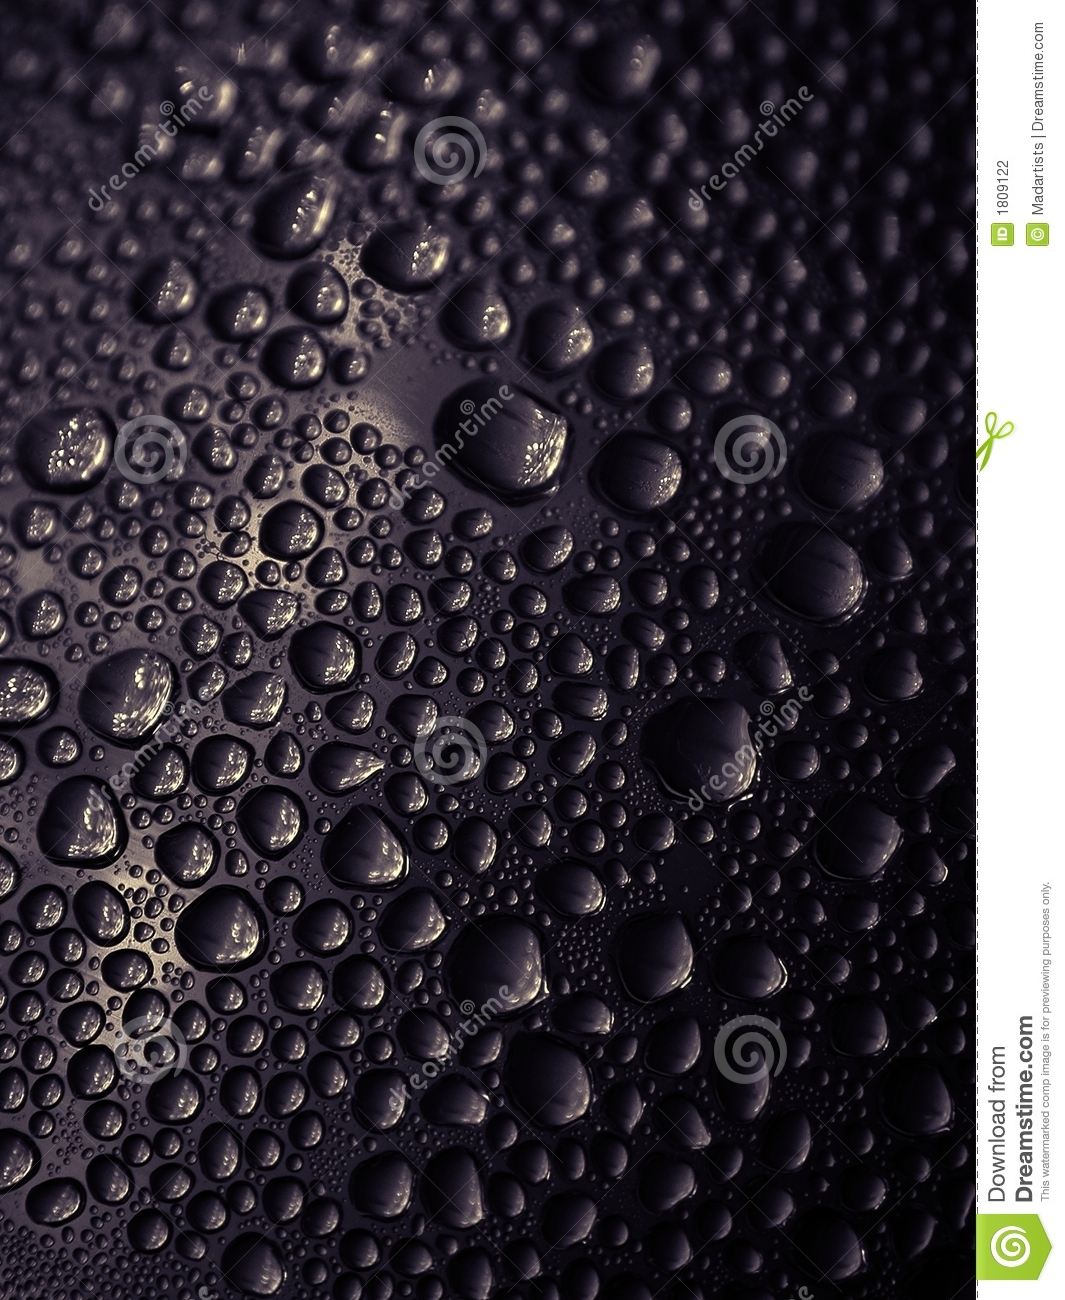 Real Black Water Drops Texture